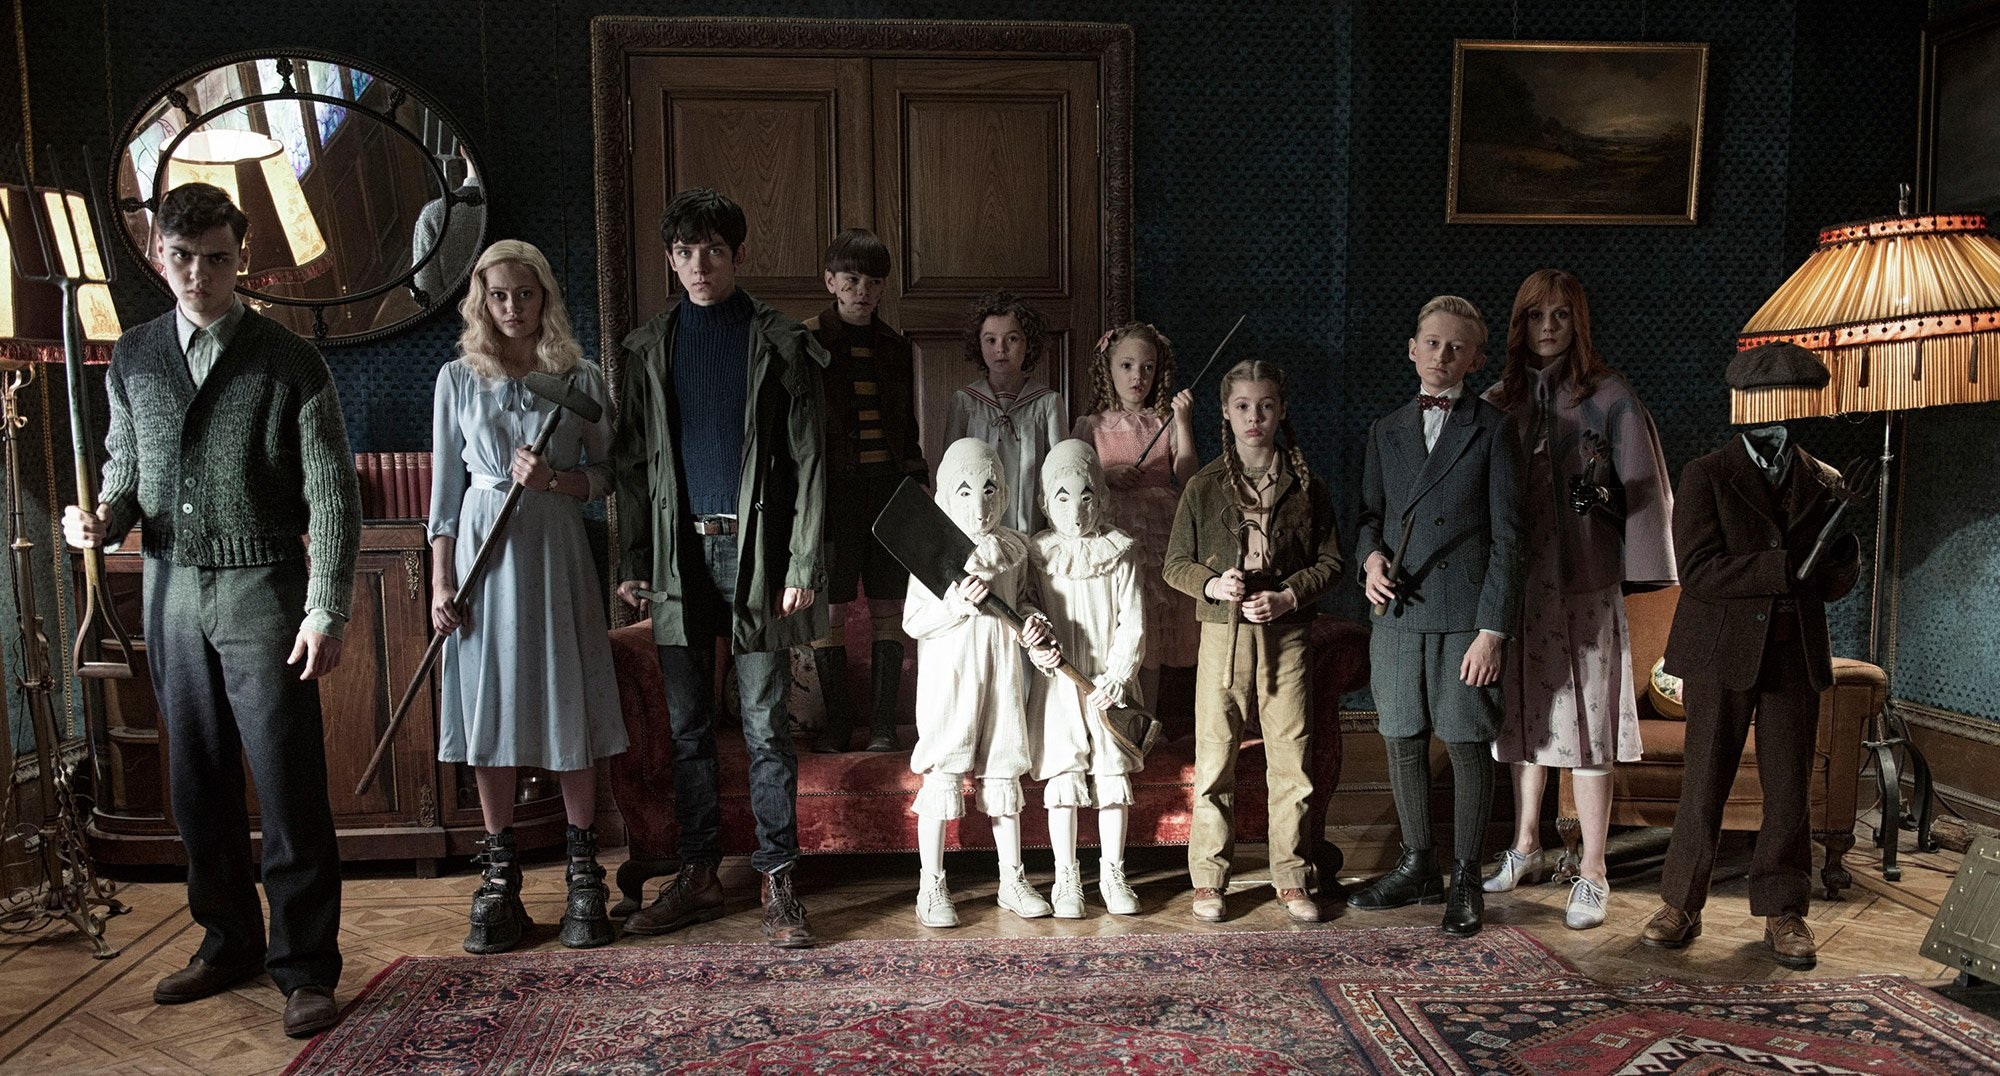 New Miss Peregrine's Home for Peculiar Children Trailer Revealed 4